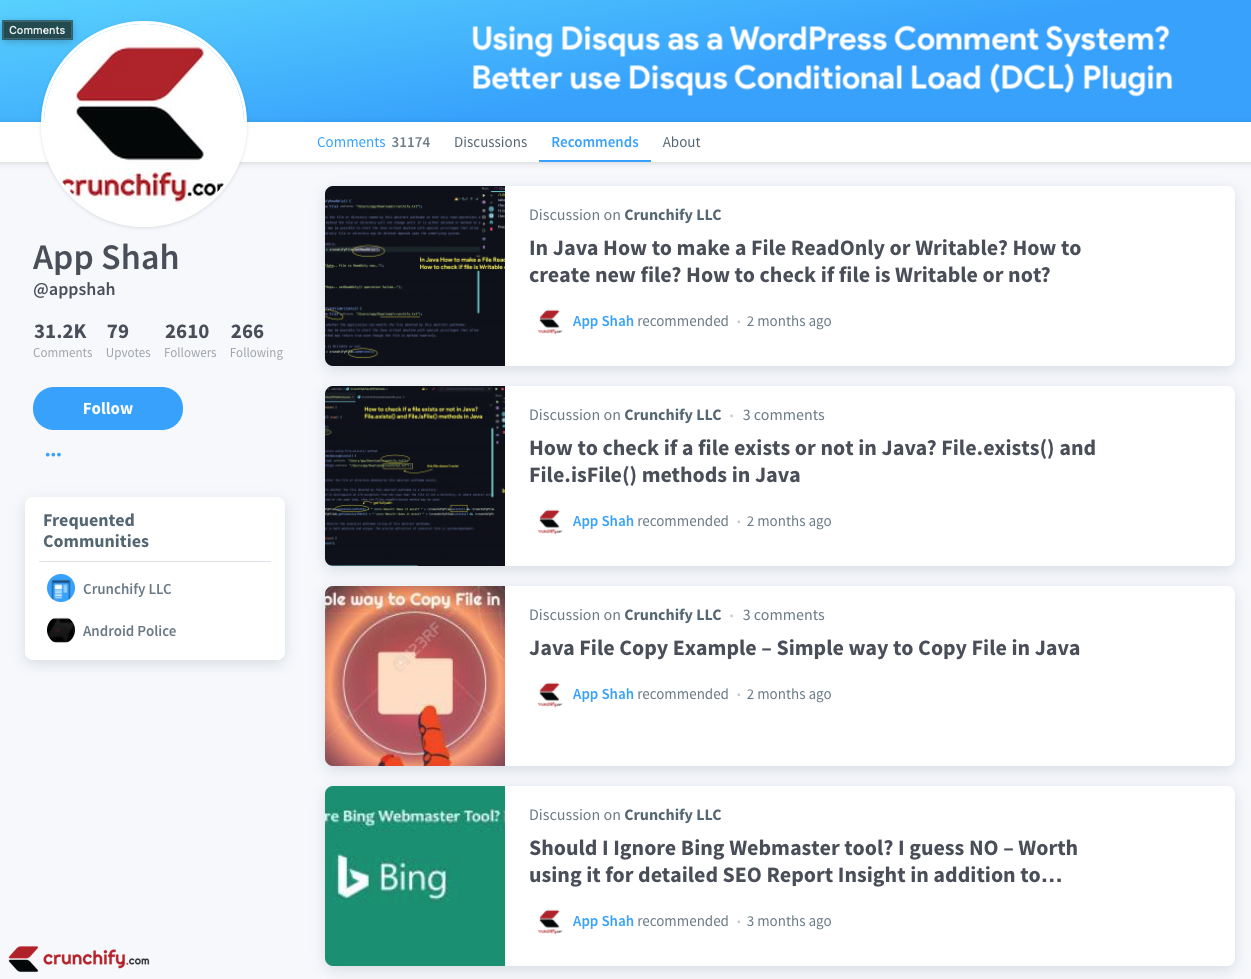 Using Disqus as a WordPress Comment System? Better use Disqus Conditional Load (DCL) Plugin